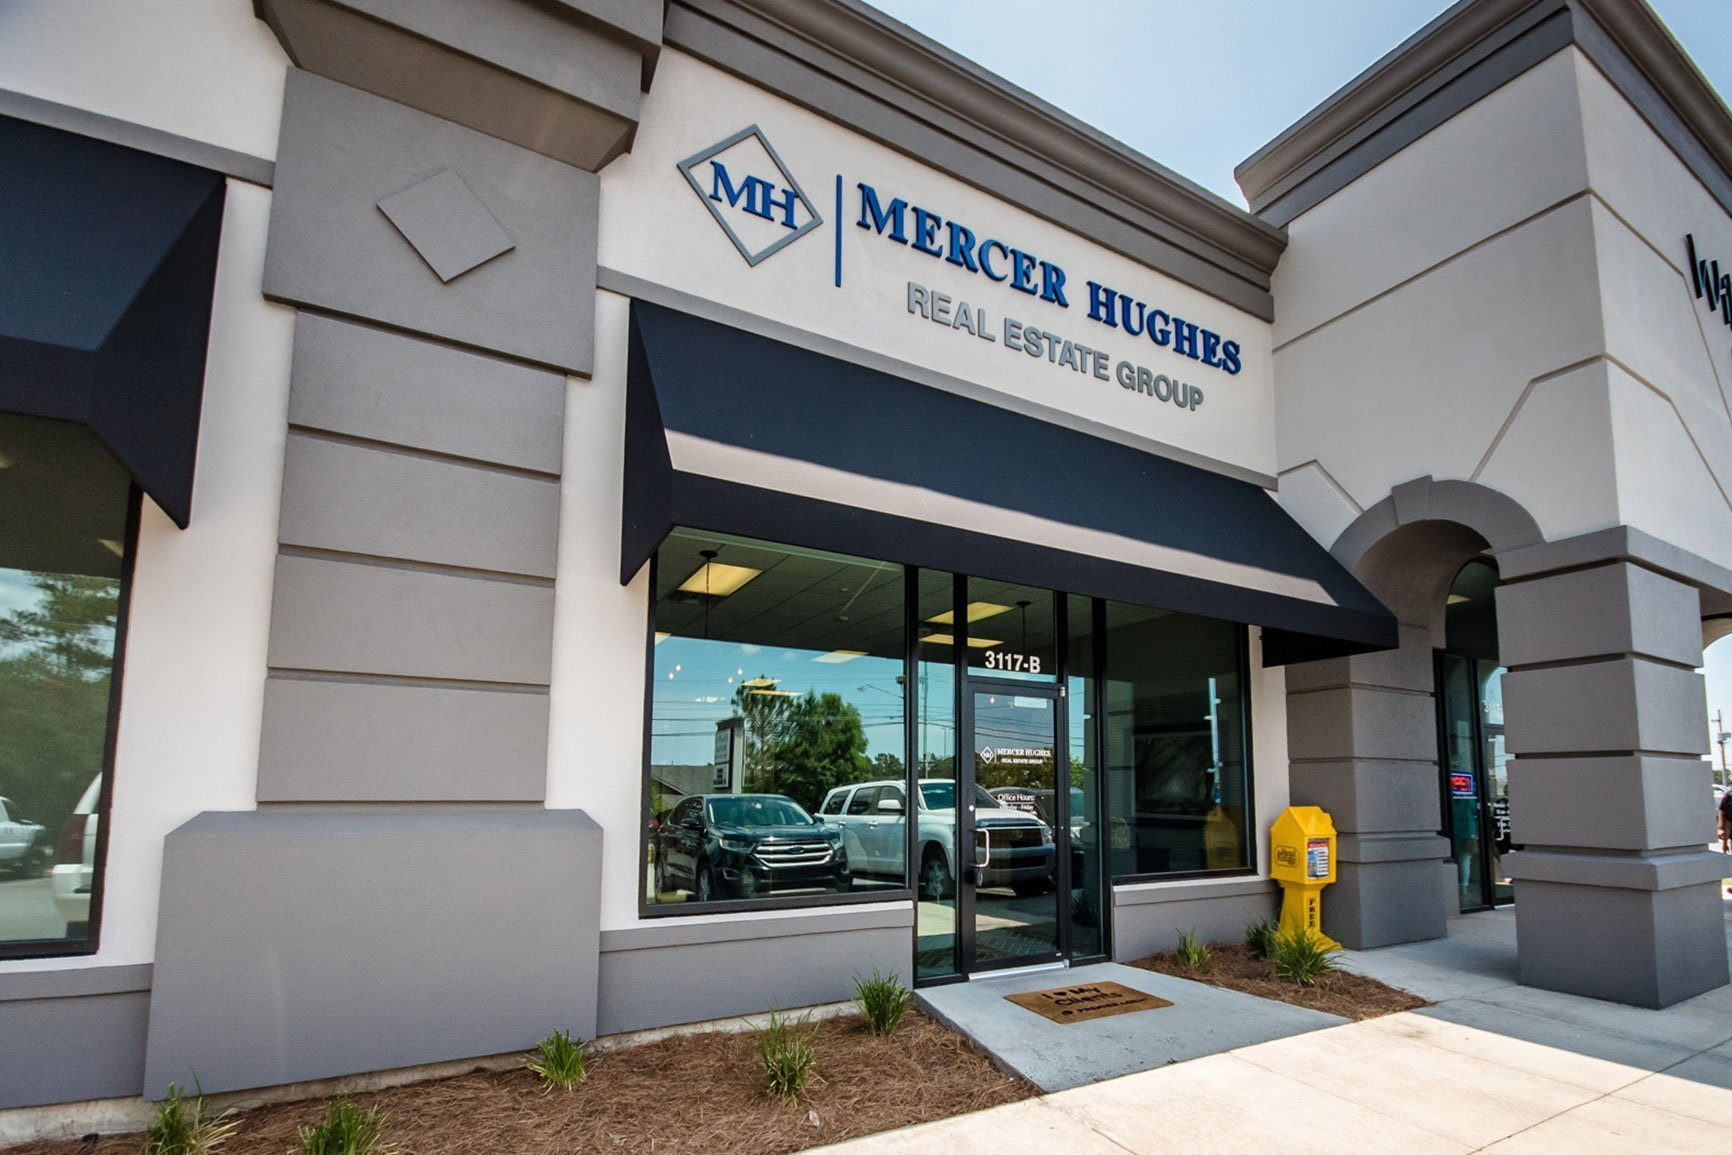 Mercer Hughes Real Estate Group, Inc